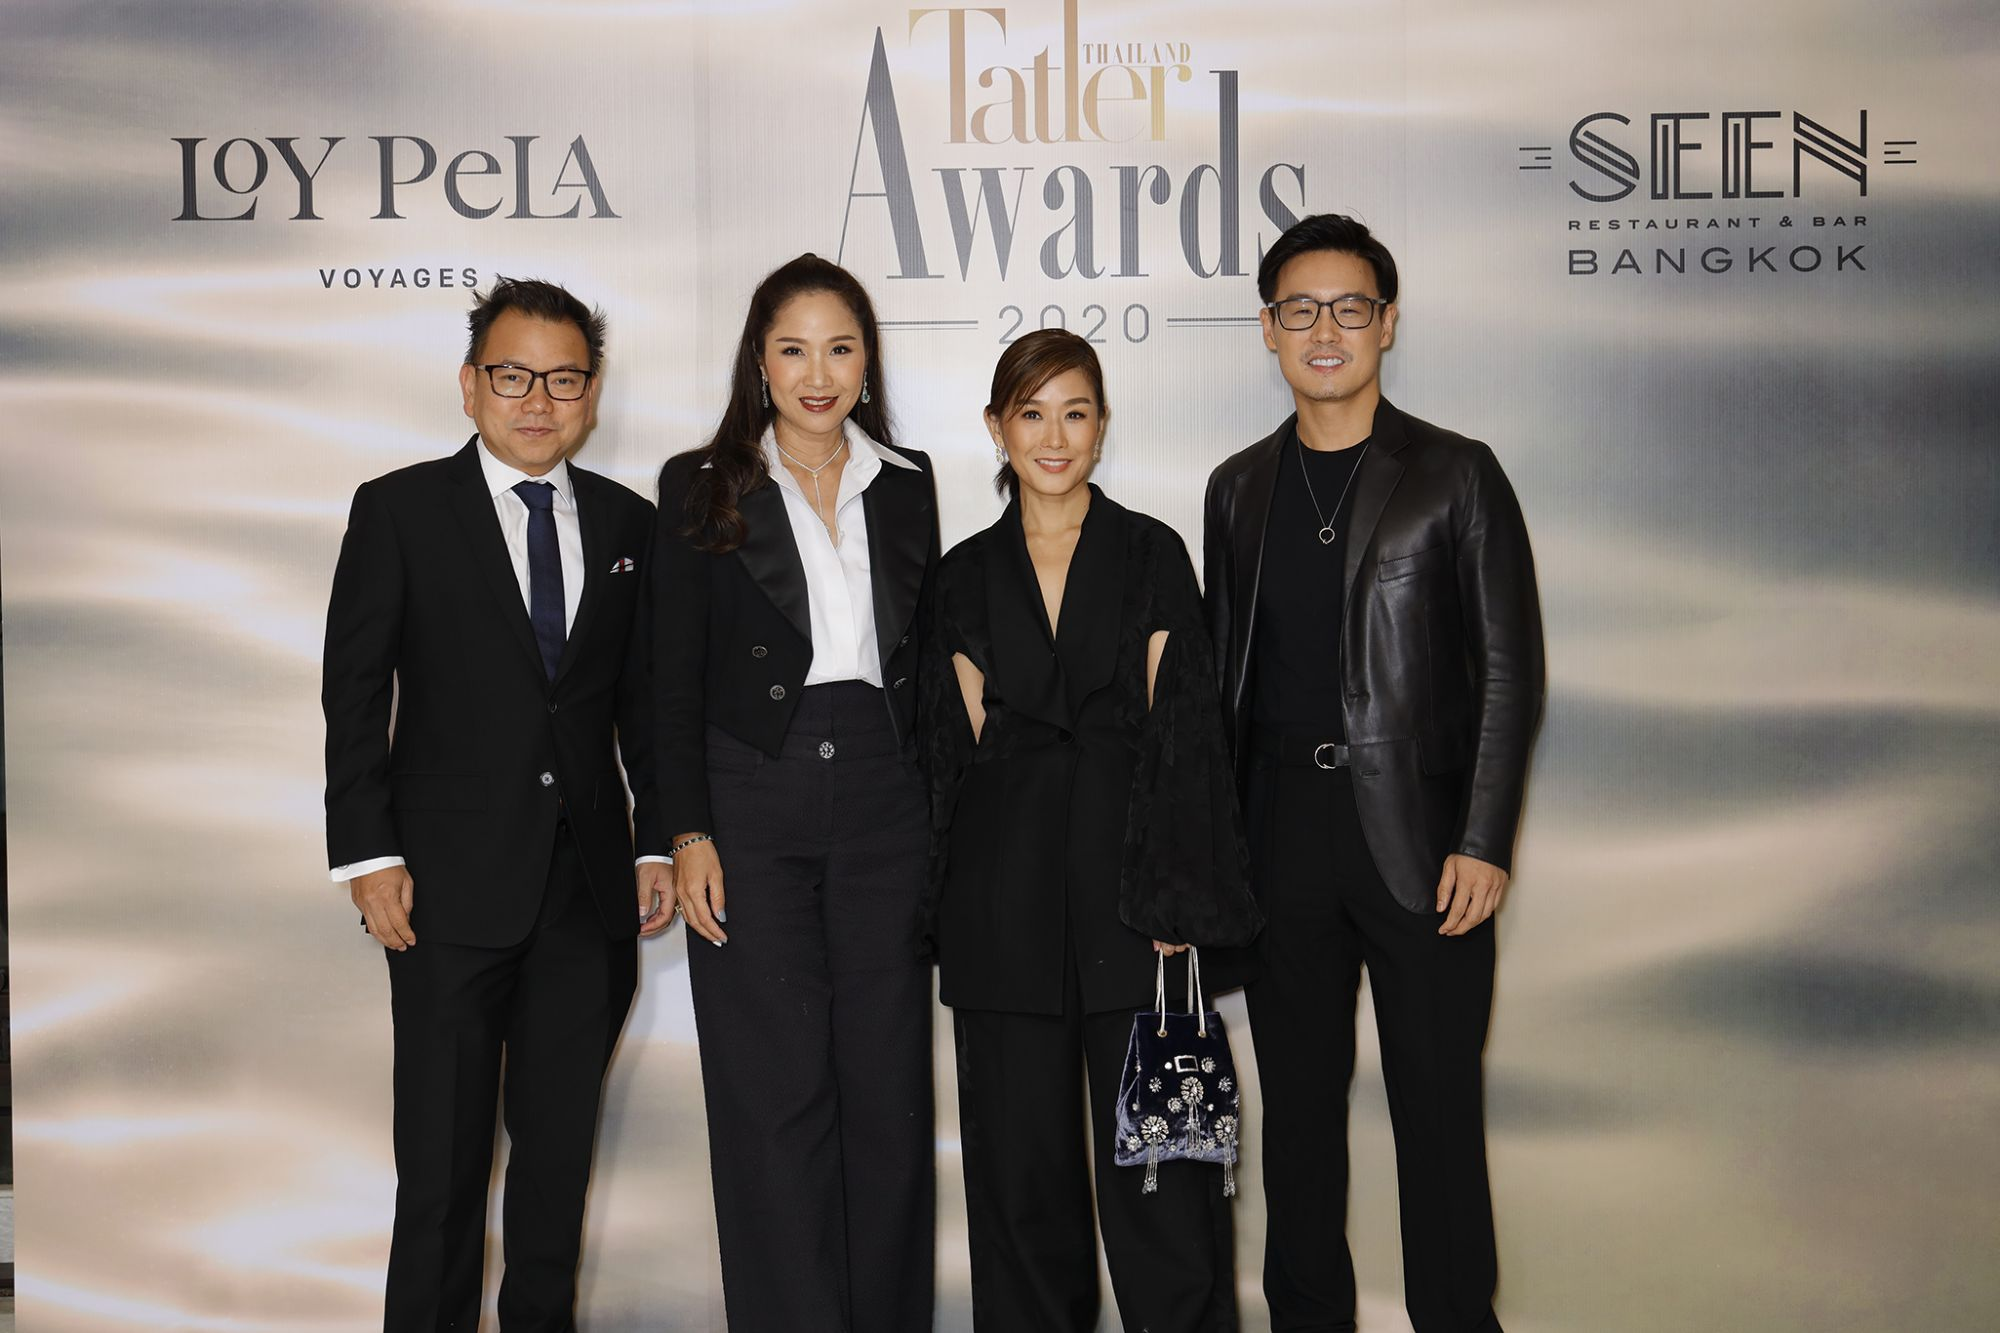 In Photos: A-Listers Attend The Tatler Awards 2020